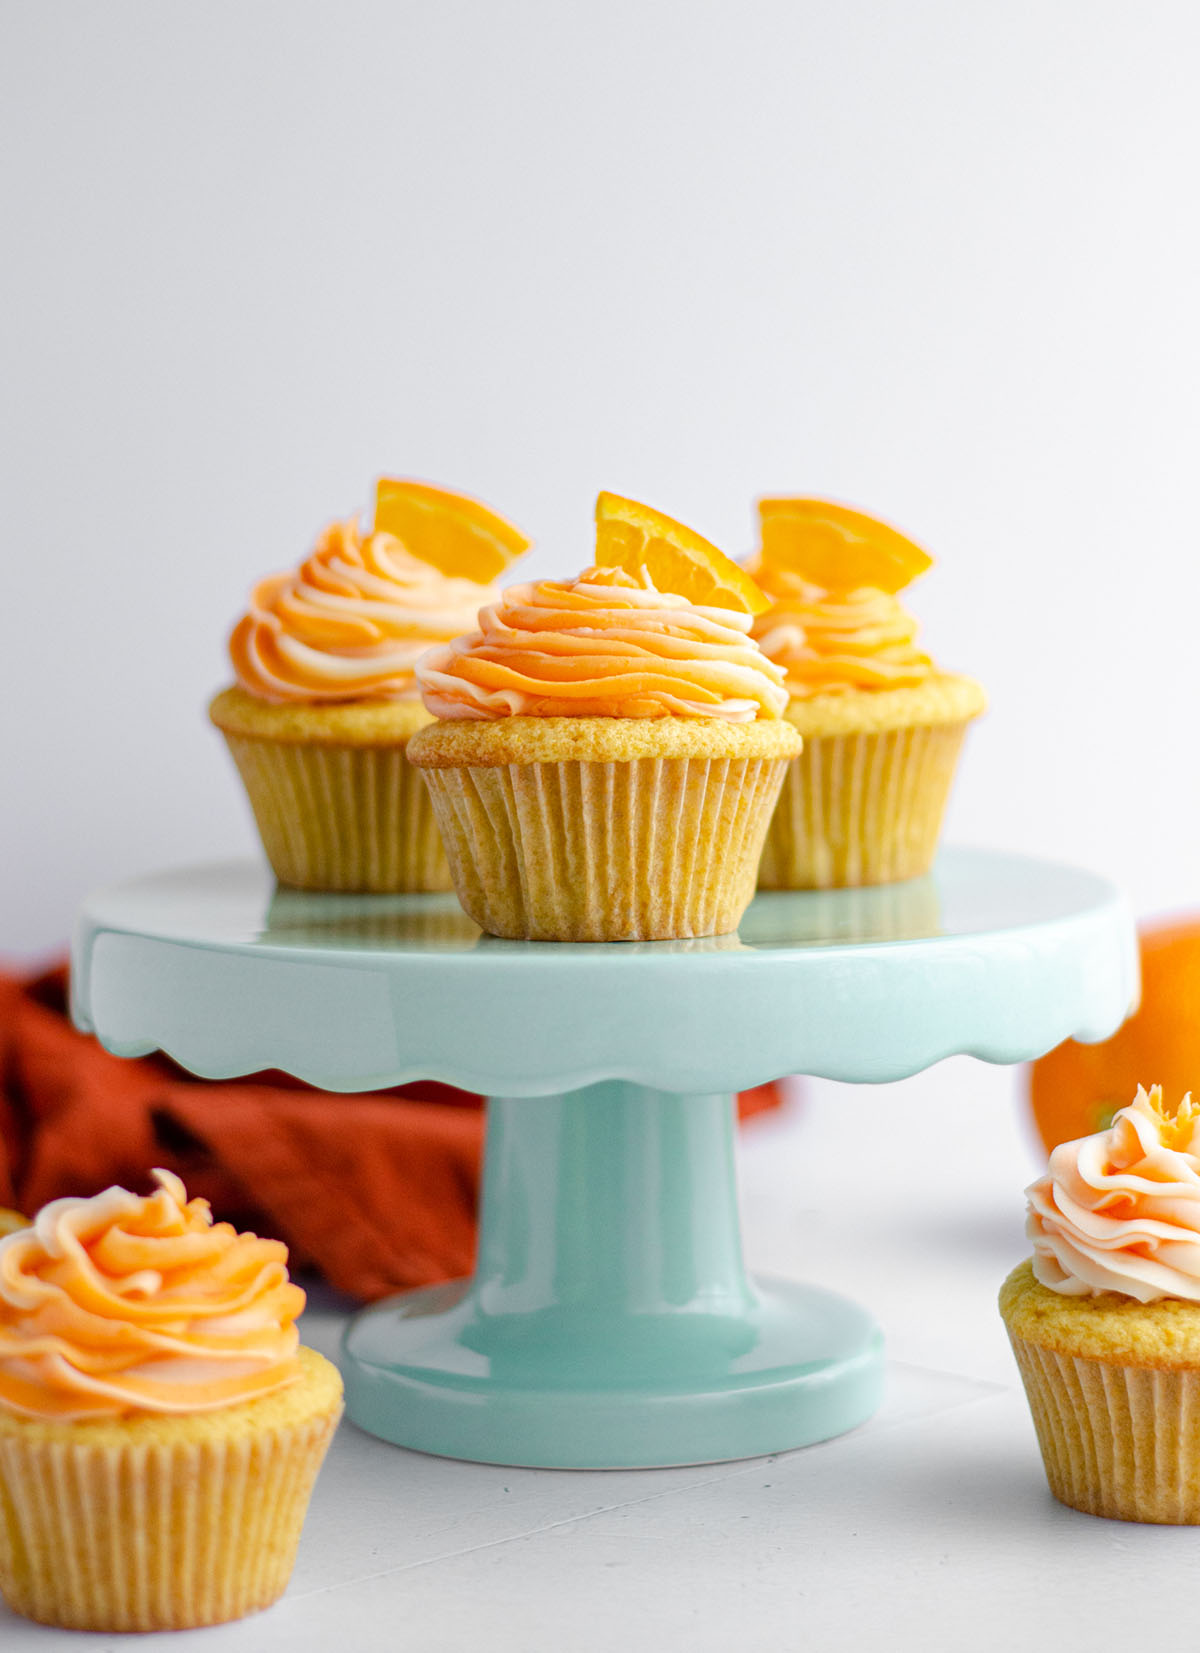 orange creamsicle cupcakes on a light blue cupcake stand